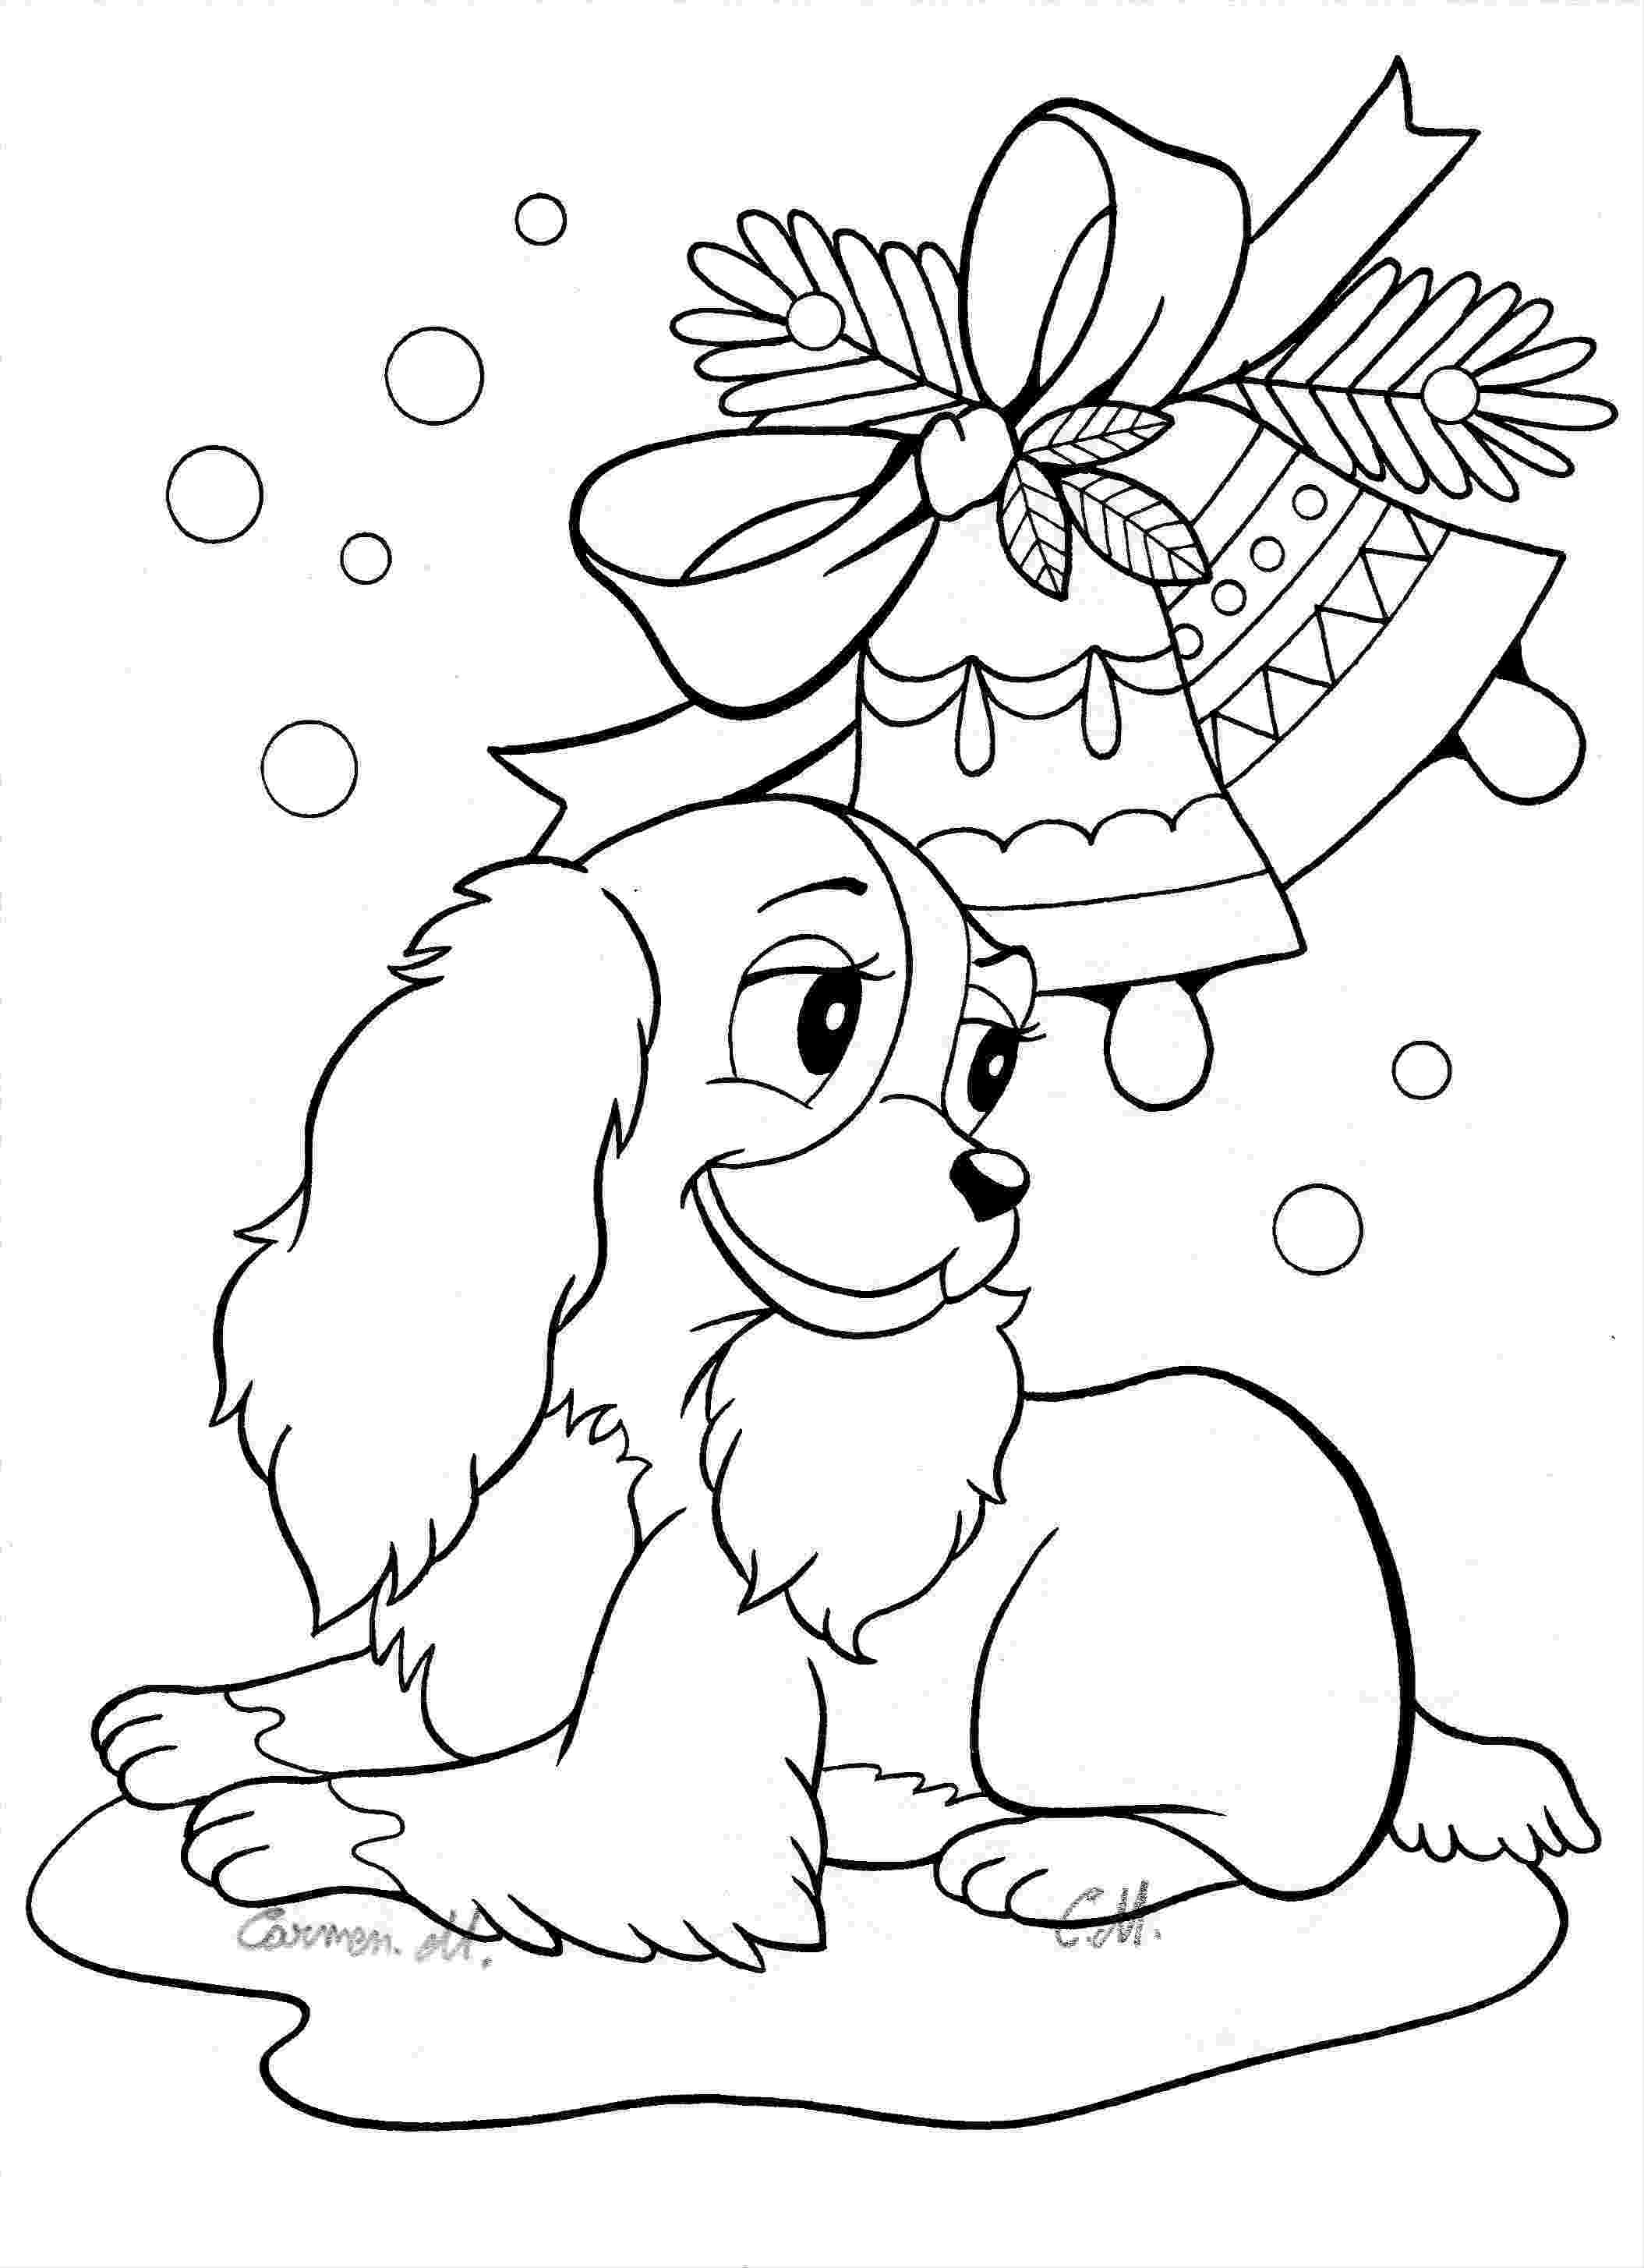 awesome coloring pages for kids coloring pages 4 kids free download on clipartmag awesome for pages kids coloring